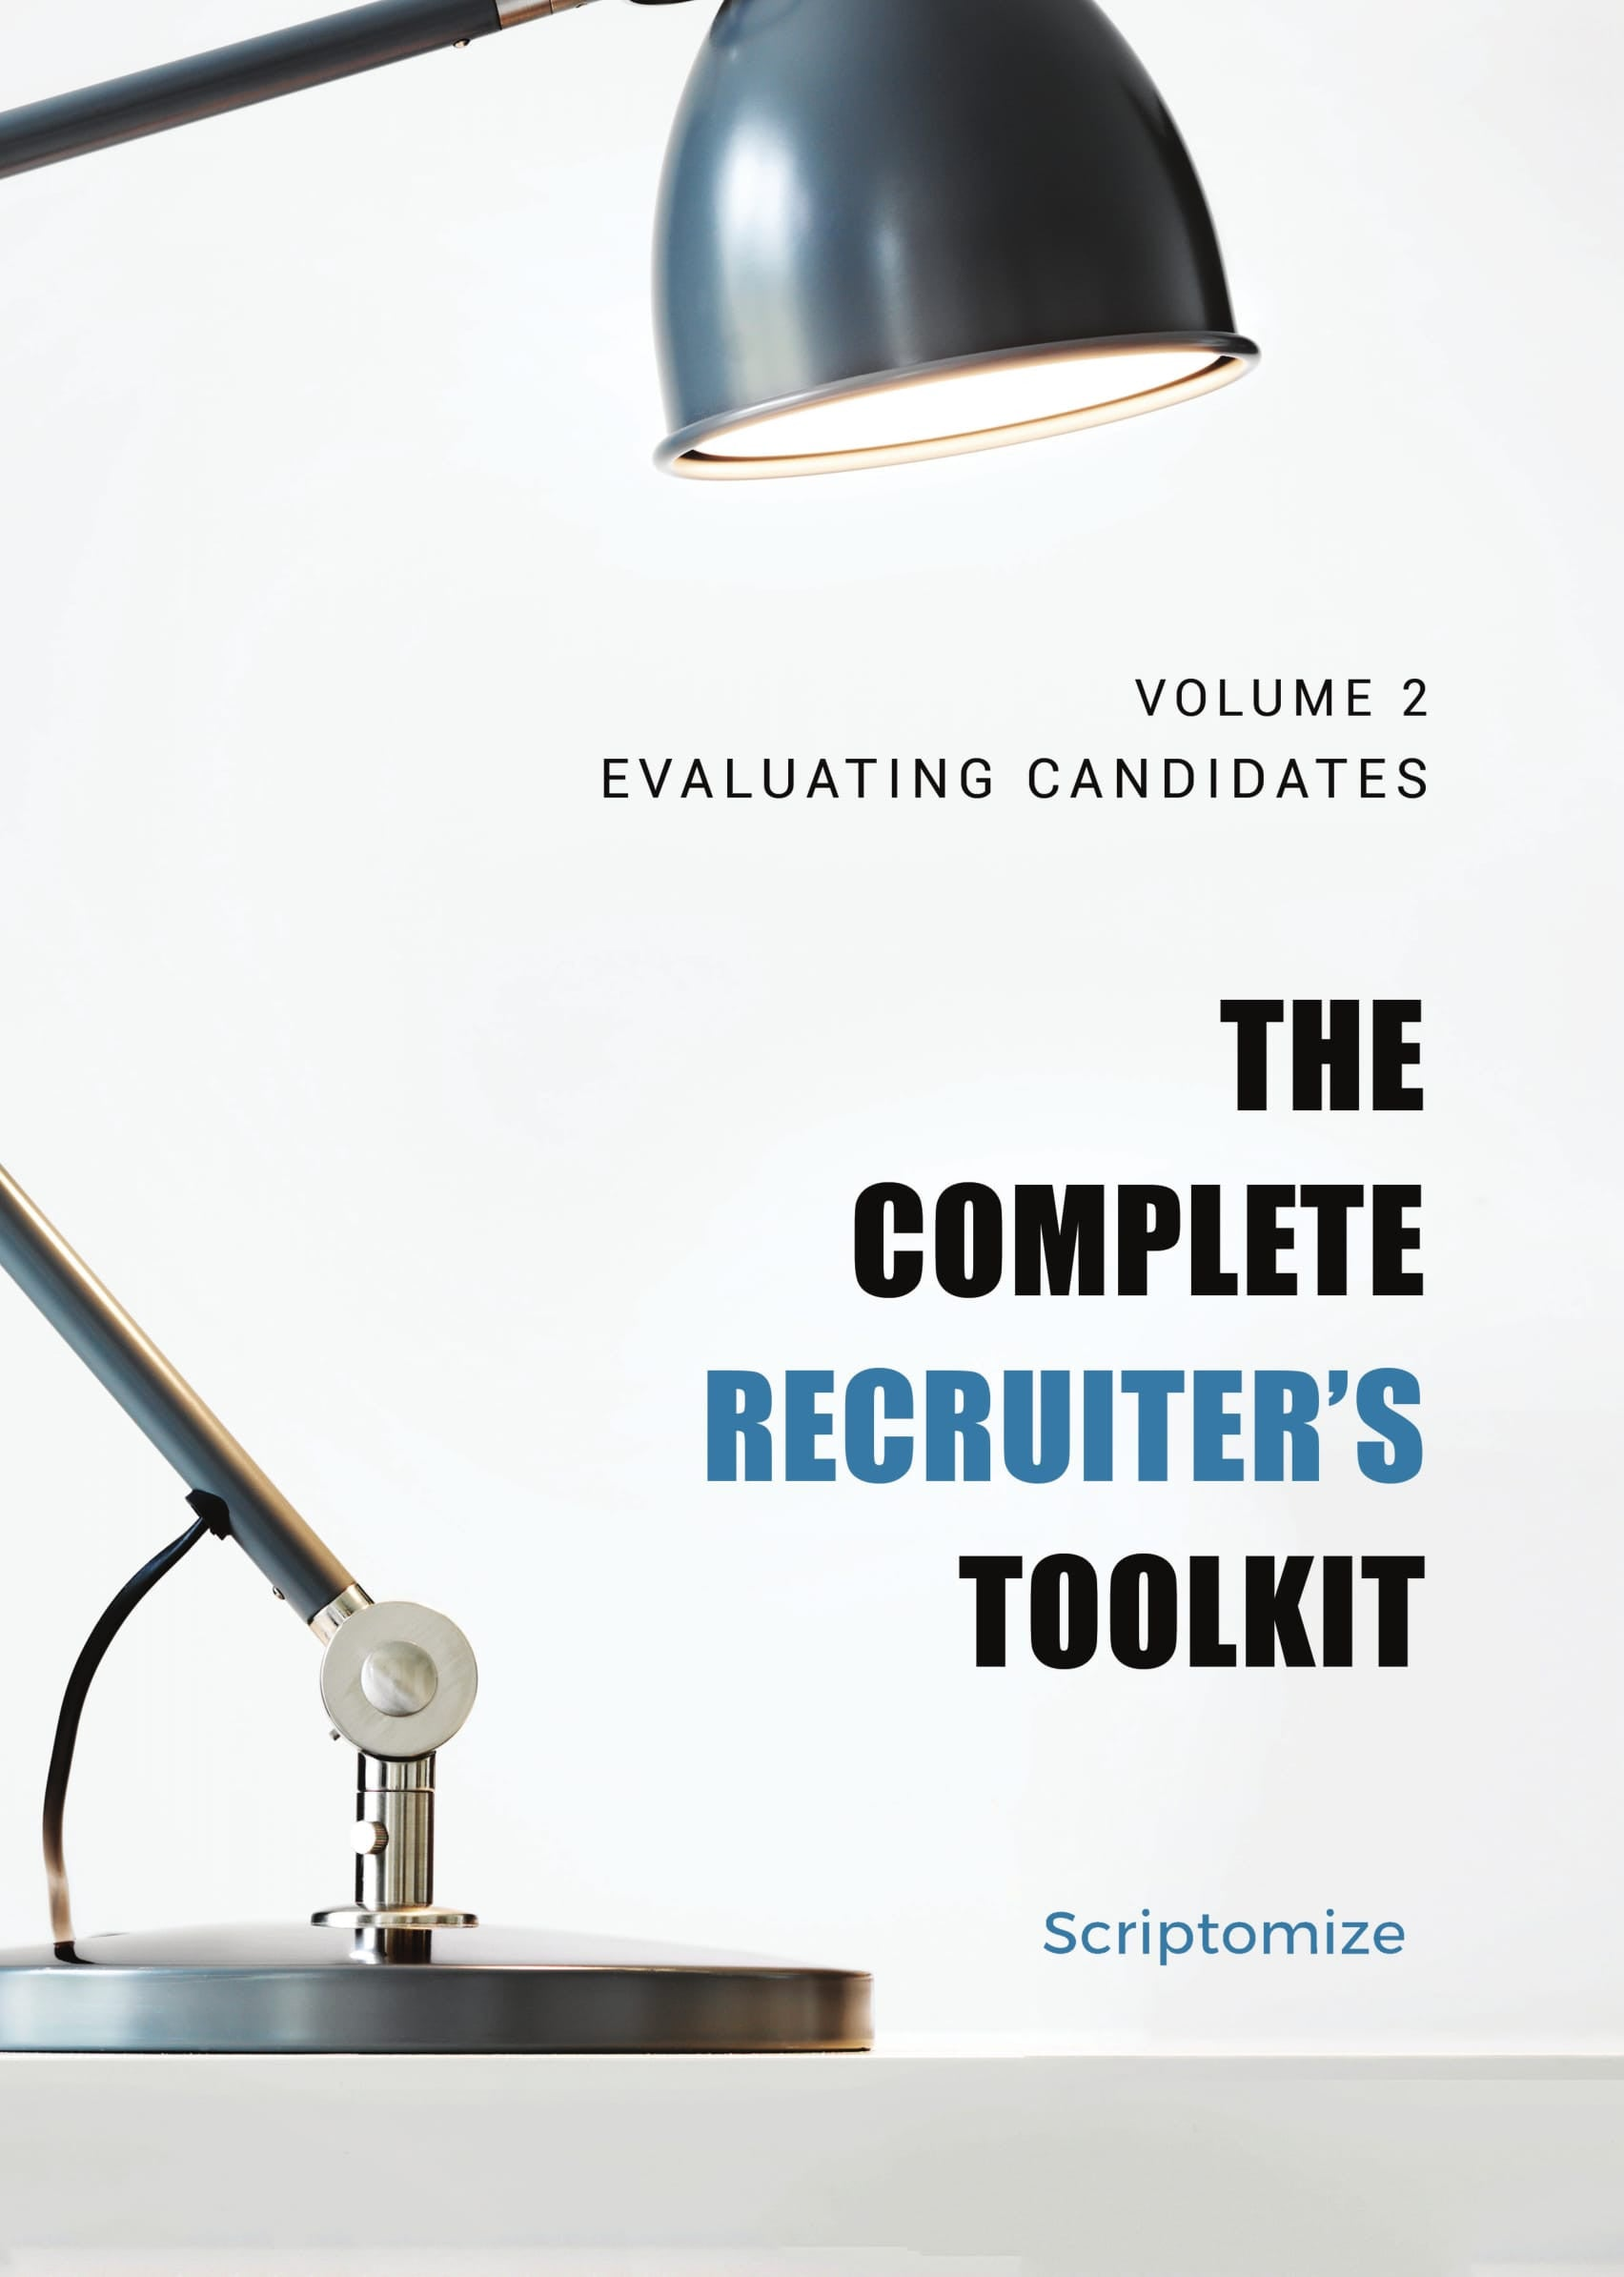 The Complete Recruiter's Toolkit Volume 2: Evaluating Candidates